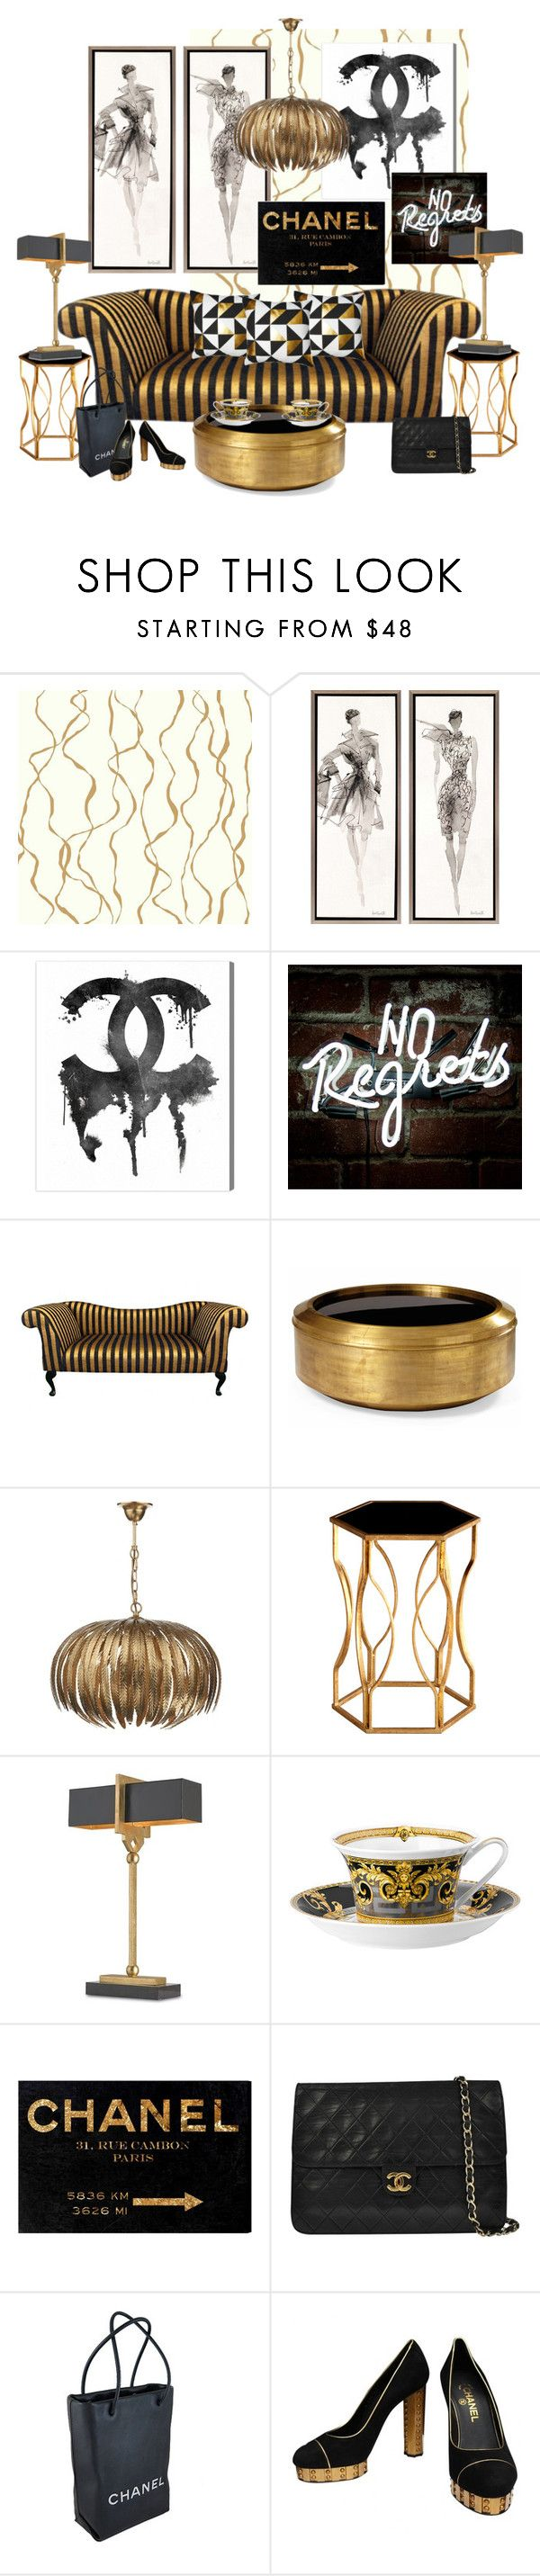 Black, Gold, and Chanel...No Regrets! by kimberlyd-2 on Polyvore featuring interior, interiors, interior design, home, home decor, interior decorating, Versace, Oliver Gal Artist Co., EASTON and Chanel